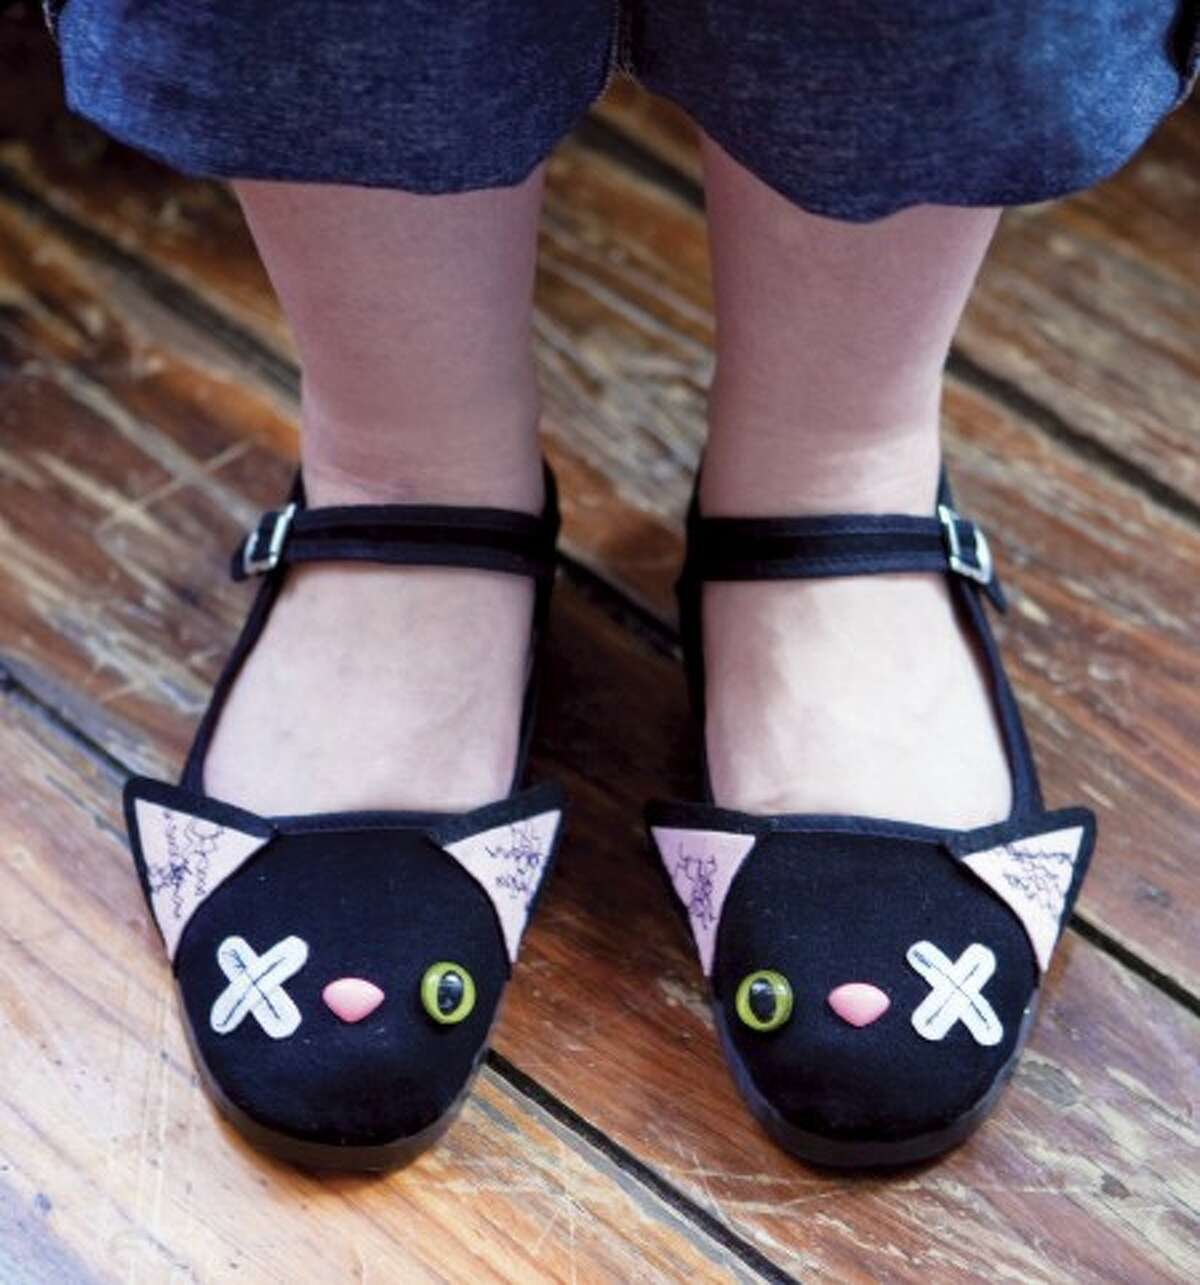 """This undated photo provided by Quirk Books/Steve Belkowitz shows a pair of slipper shoes transformed into """"zombie kittens,"""" courtesy of Lindsay Gibson of Em & Sprout and featured in the book """"Witch Craft,"""" Quirk Books, 2010. """"Witch Craft"""" is full of ideas for handmade accessories, decorations and treats. (AP Photo/Quirk Books, Steve Belkowitz) NO SALES"""